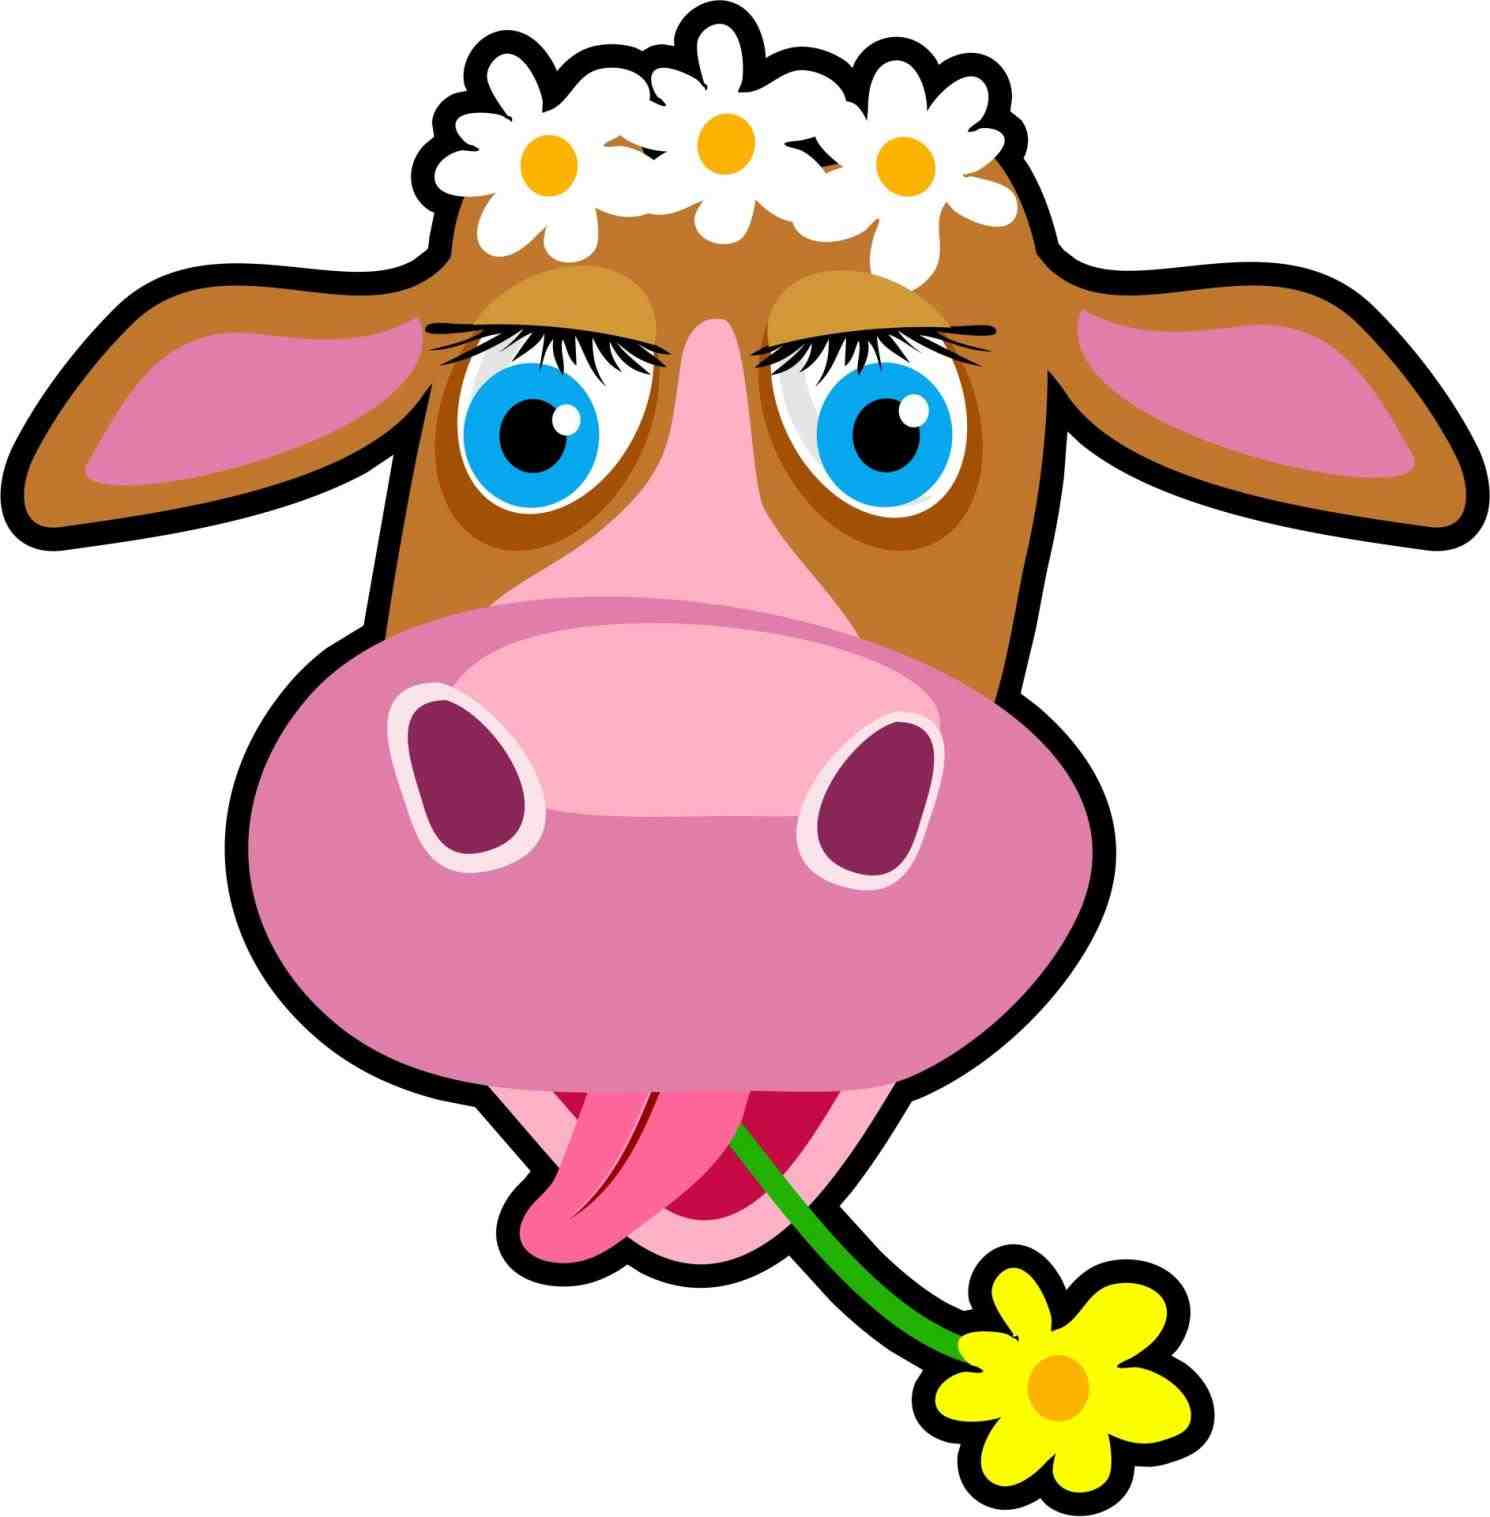 1490x1517 Cow Christmas Clip Art Cheminee.website